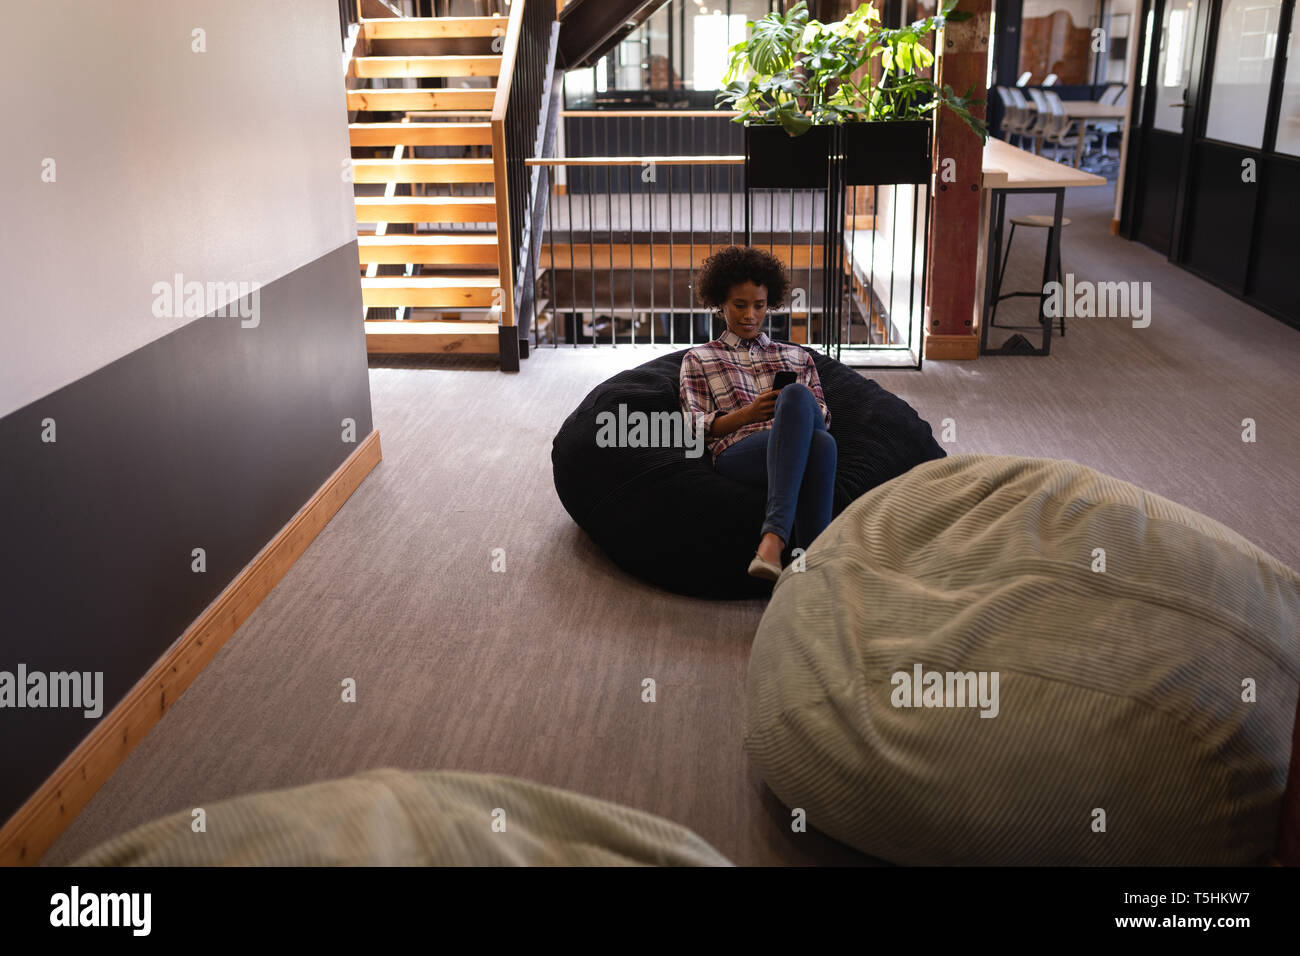 Businesswoman using mobile phone while relaxing at bean bag - Stock Image